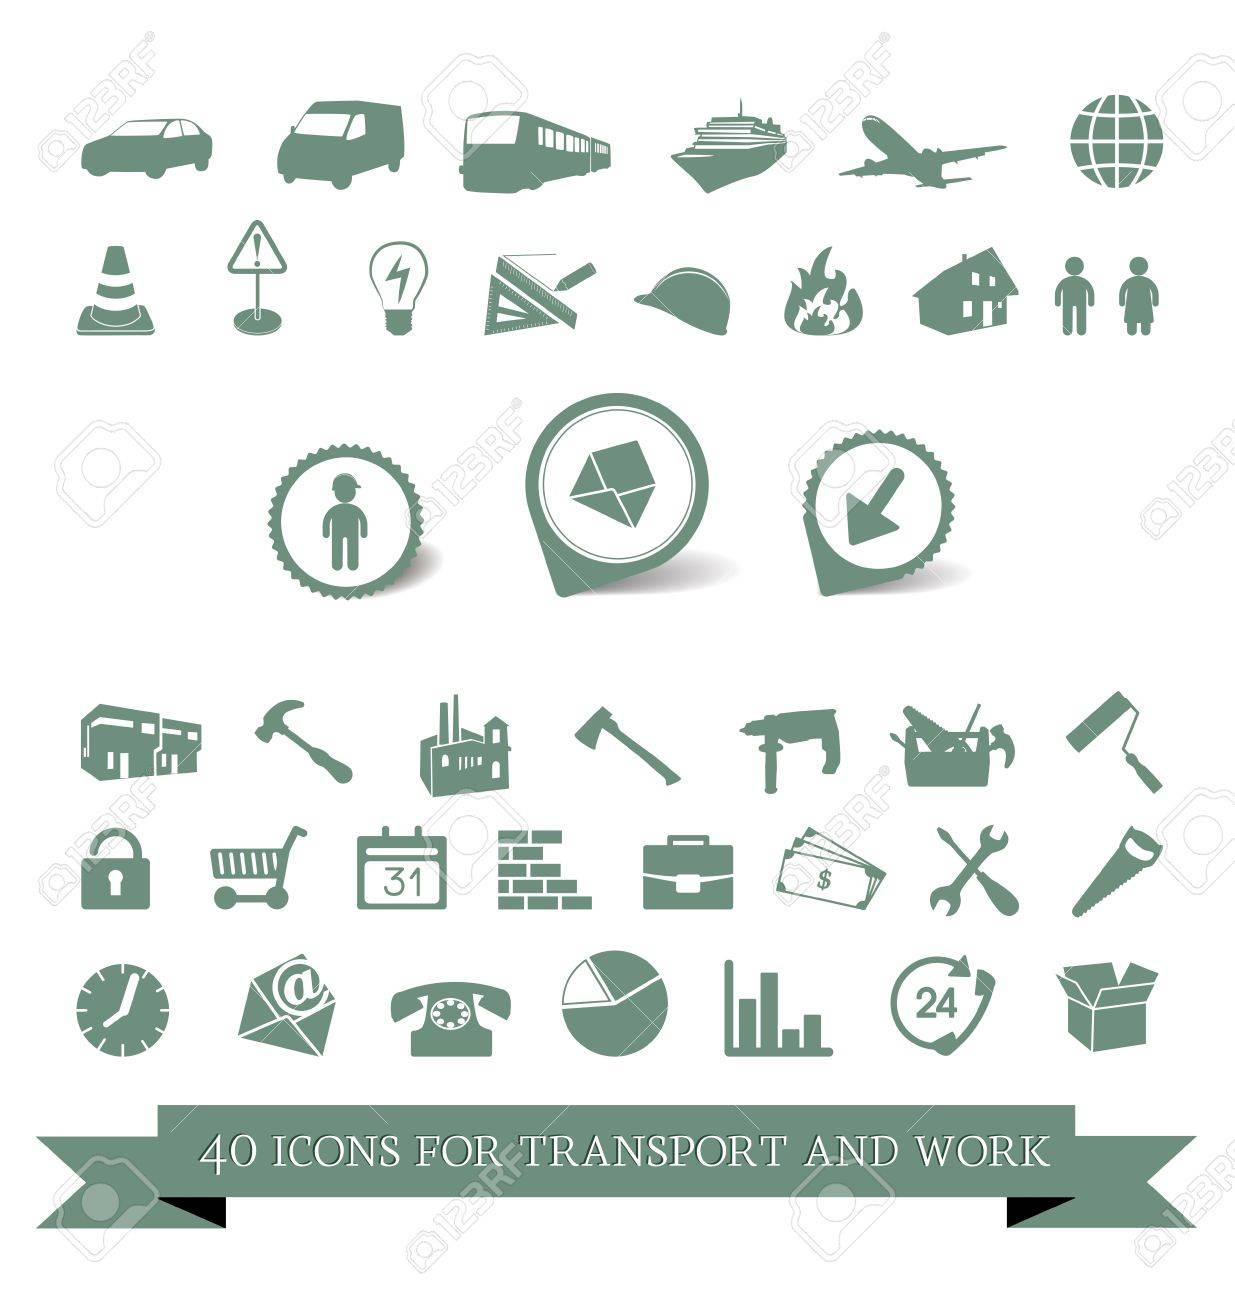 40 icons for travel and work tools Stock Vector - 18587163